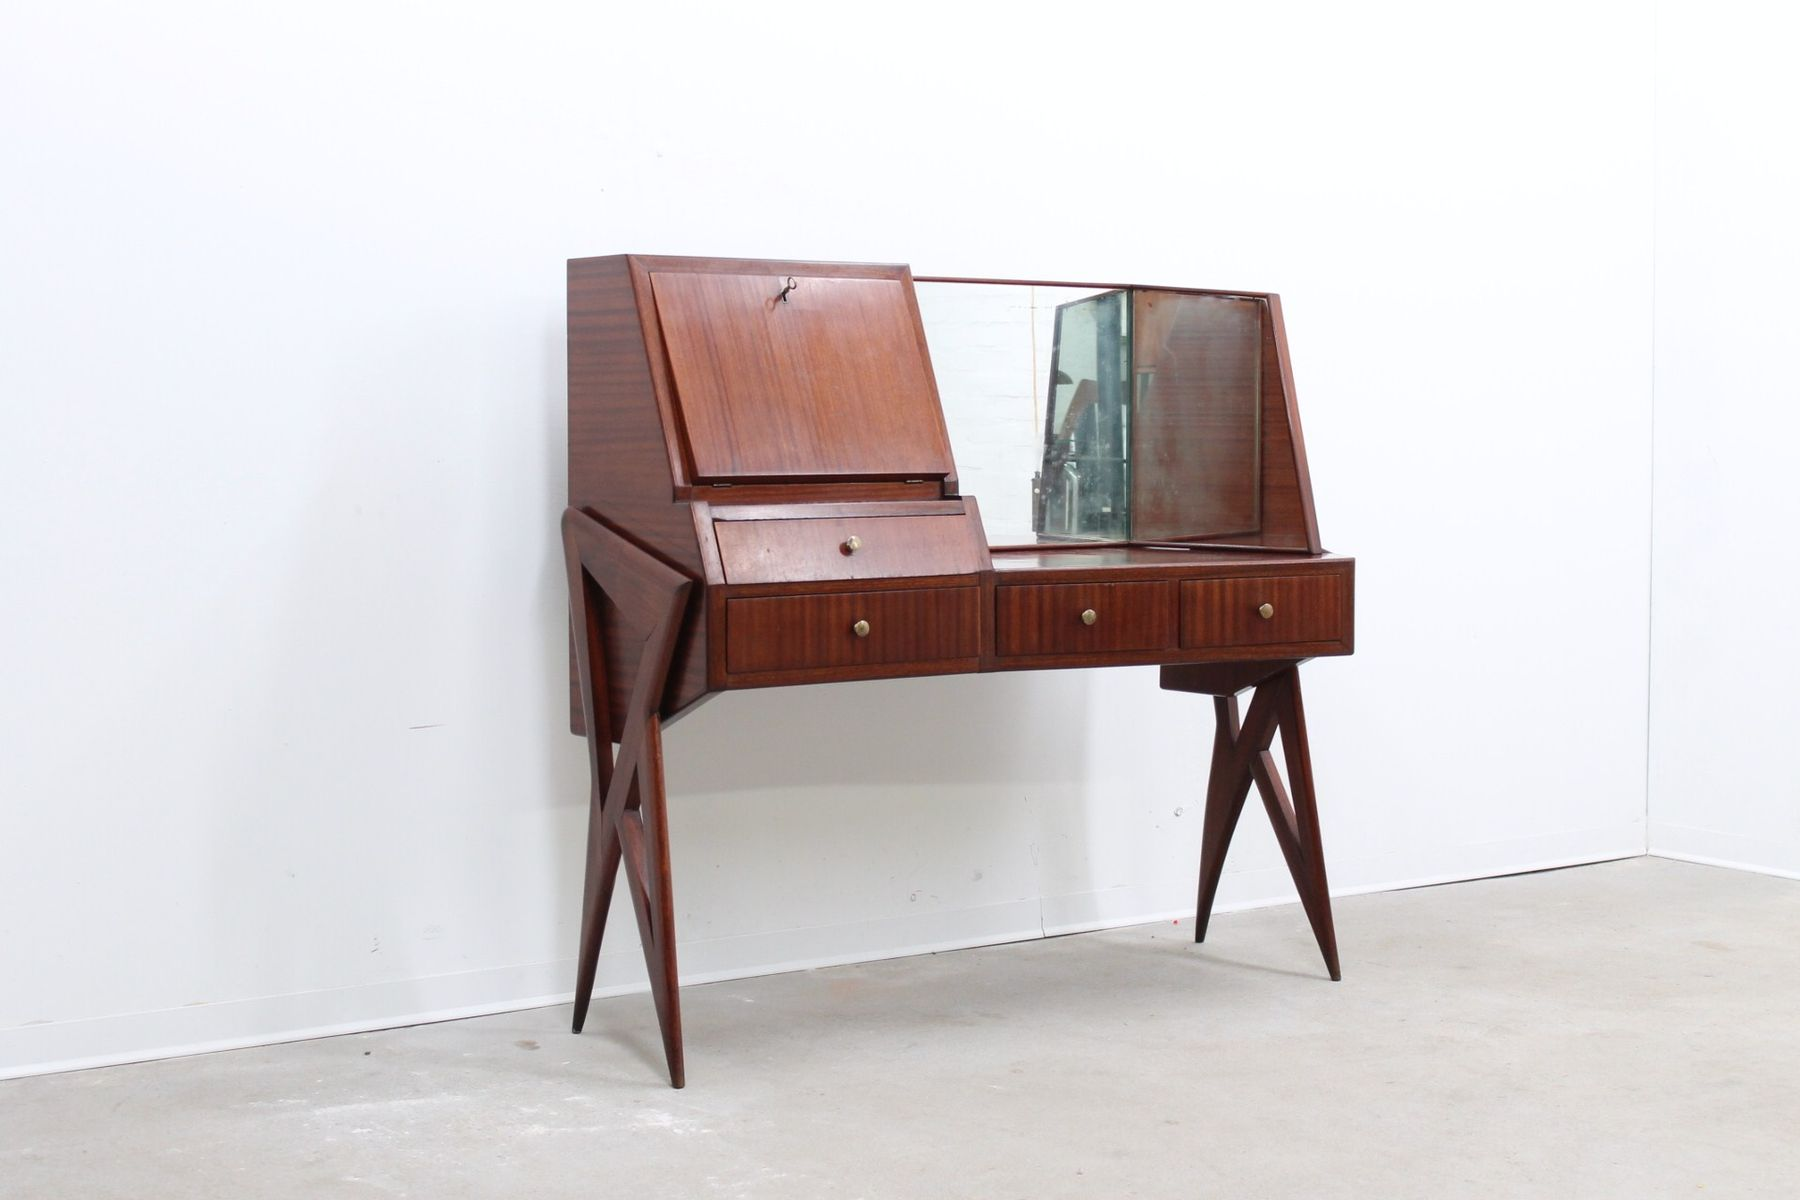 midcentury bar cabinet by ico parisi for sale at pamono - midcentury bar cabinet by ico parisi